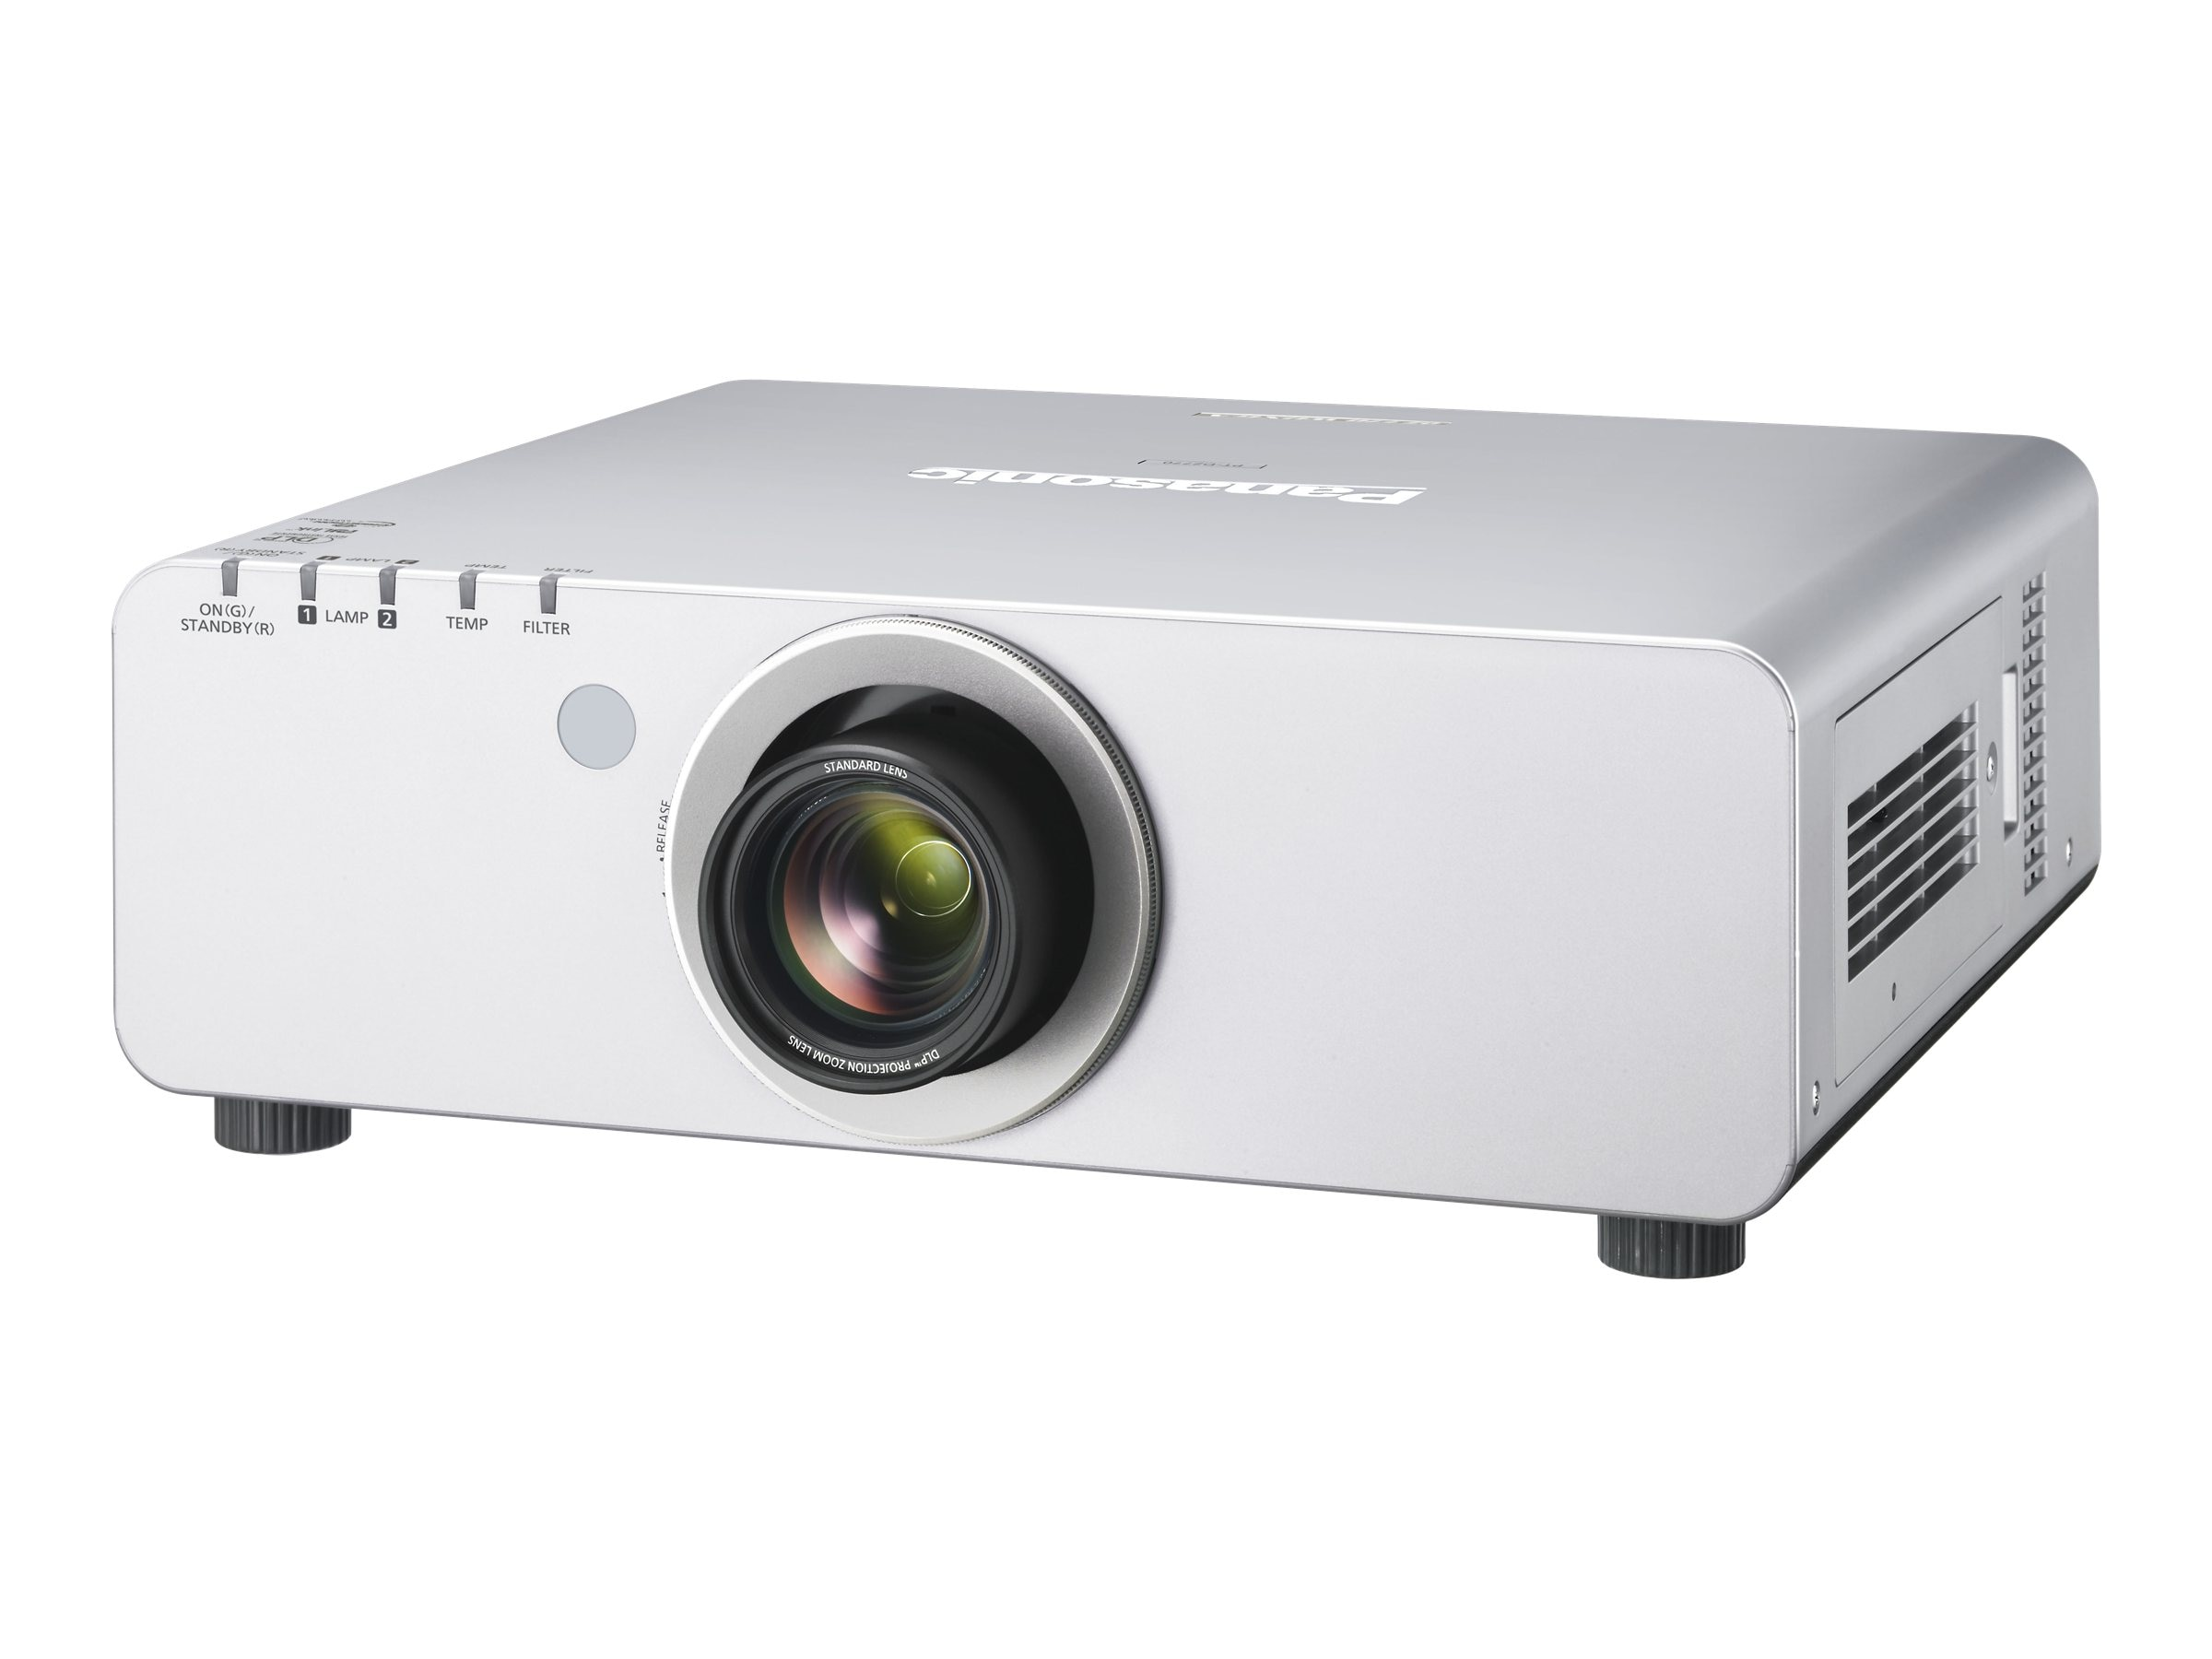 Panasonic PT-DZ770US Full HD DLP Projector, 7000 Lumens, PTDZ770US, 14700534, Projectors